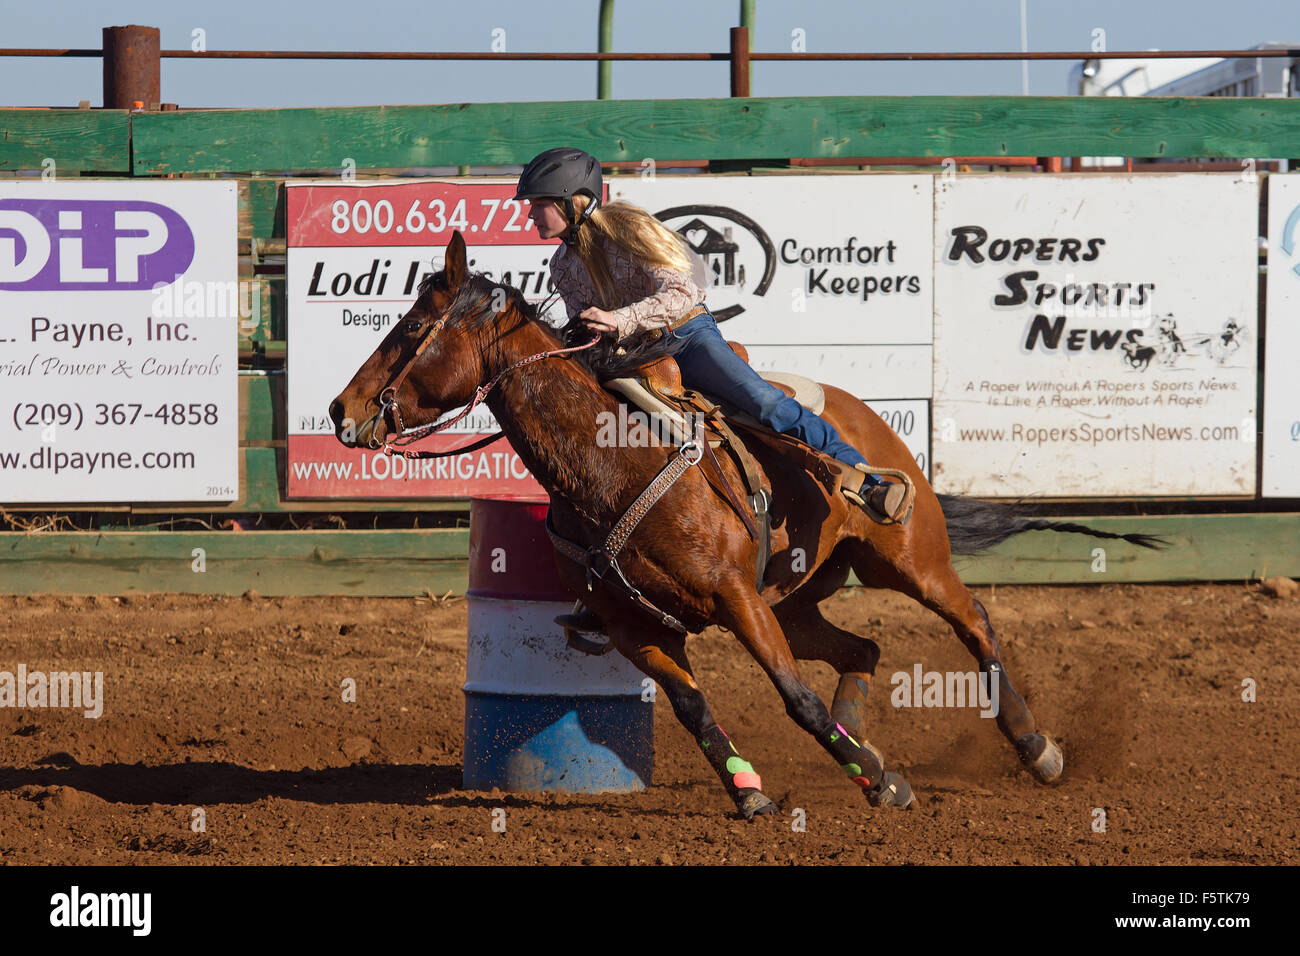 Cow Racing Stock Photos & Cow Racing Stock Images - Page 3